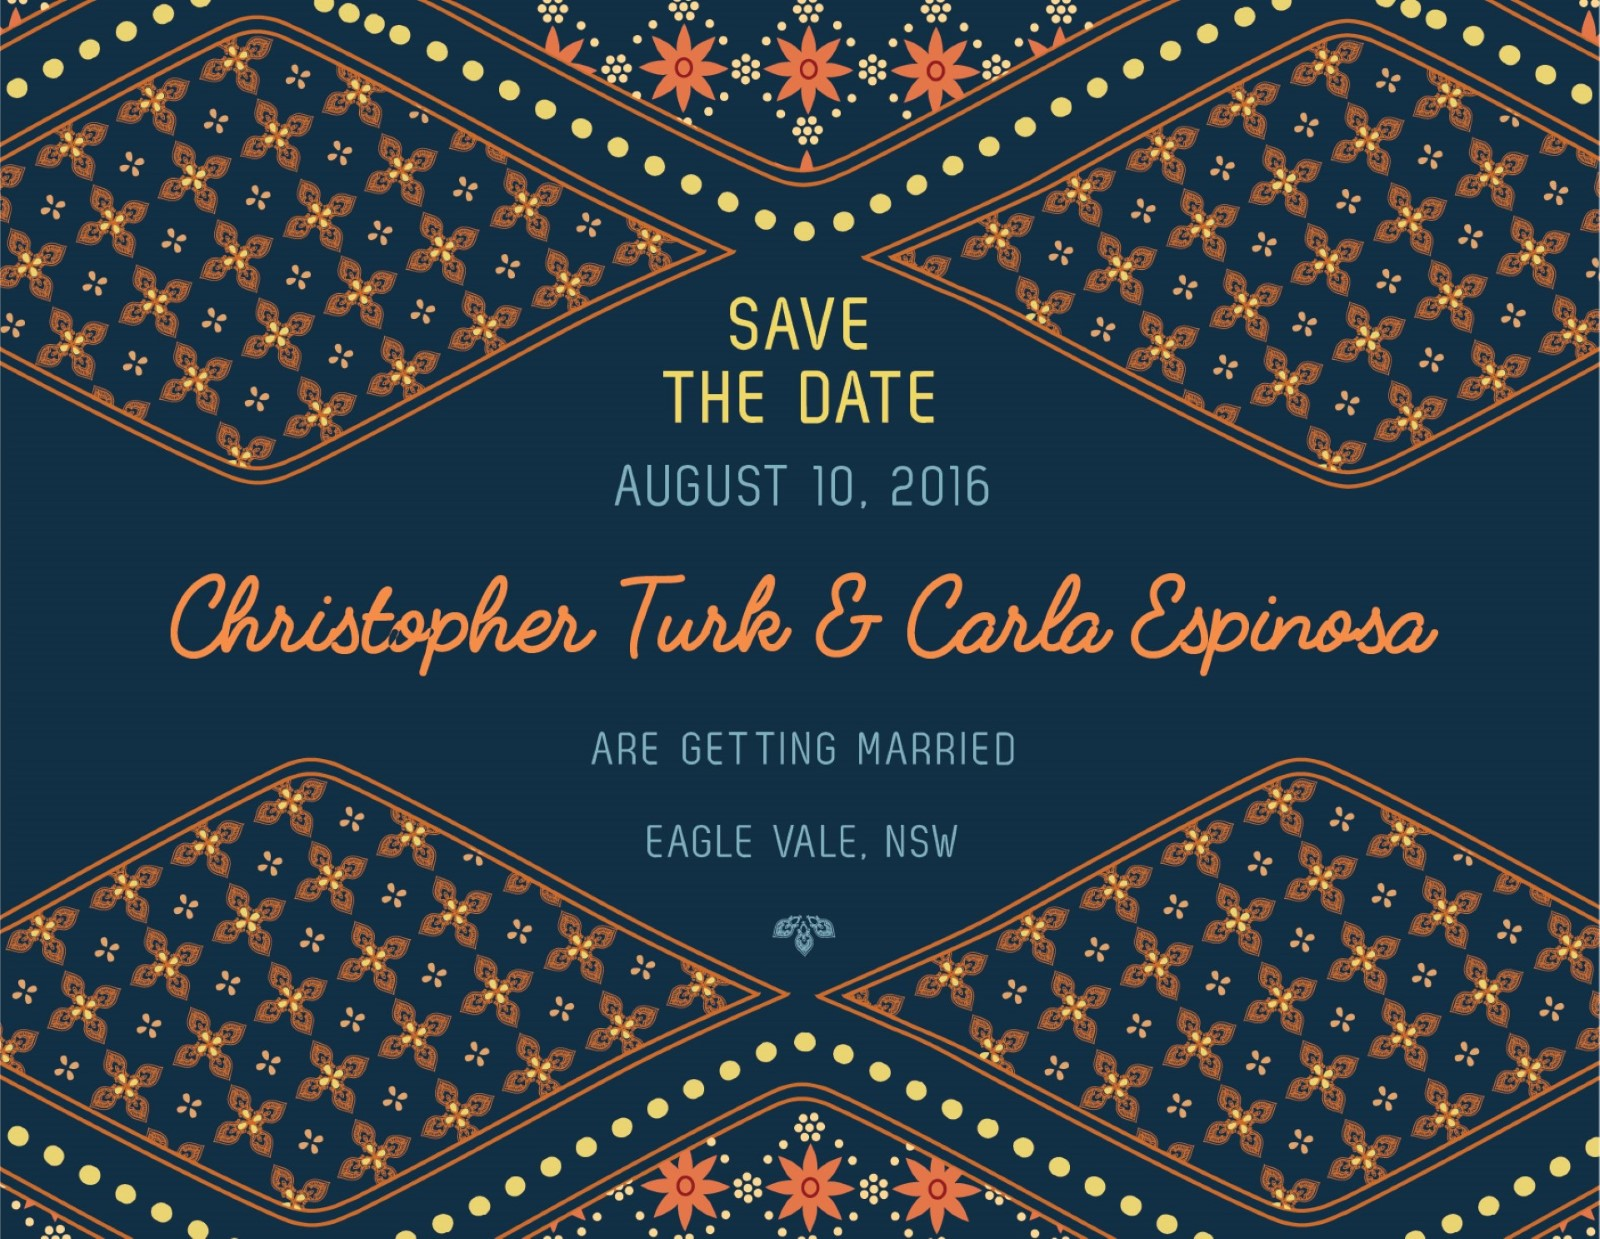 moroccan nights digital printing save the date